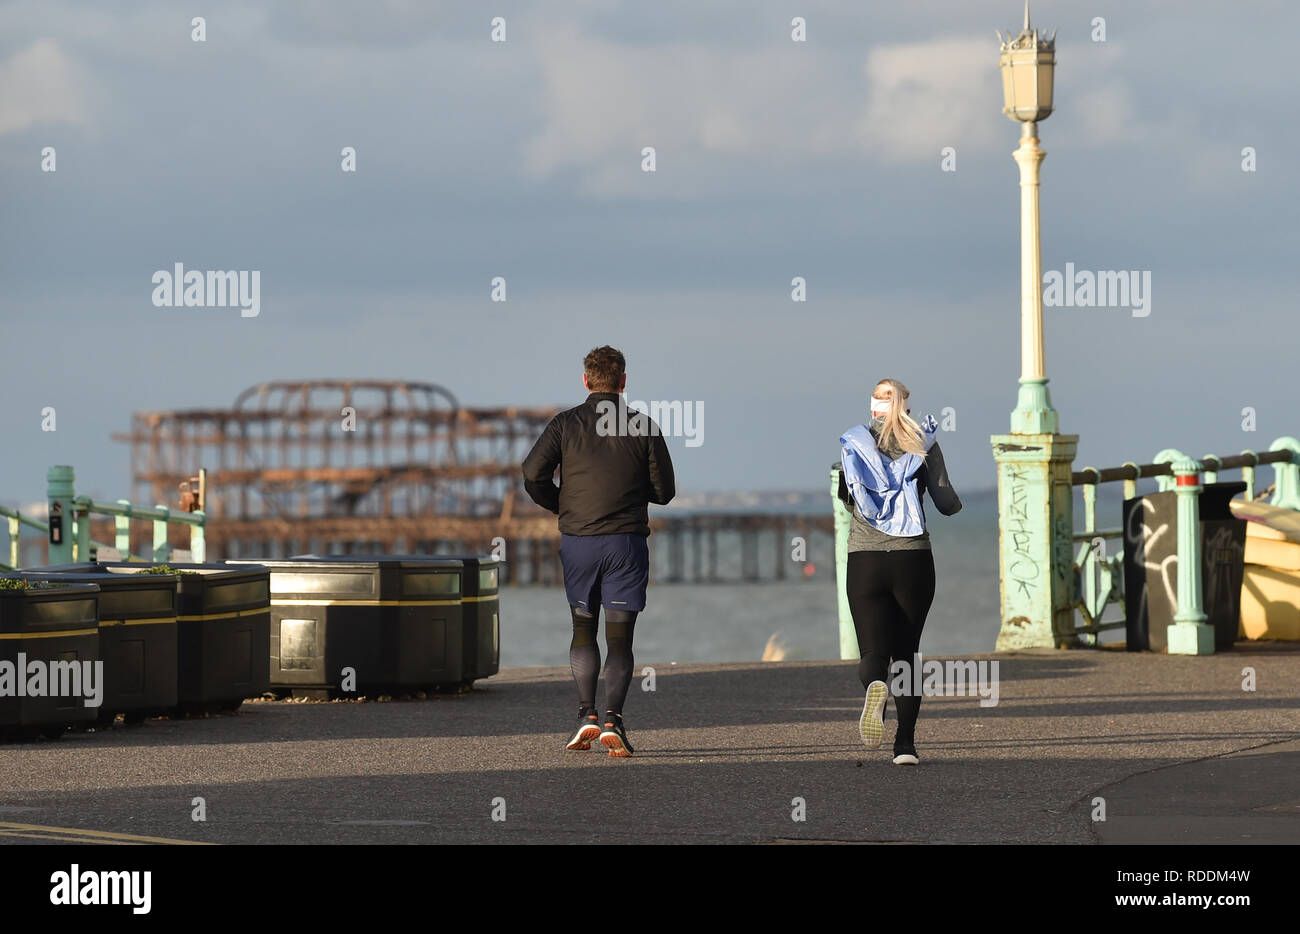 Brighton, UK. 18th Jan, 2019. Runners on a sunny but chilly winter morning along Brighton seafront as the cold weather is forecast to continue throughout Britain over the next few days Credit: Simon Dack/Alamy Live News - Stock Image